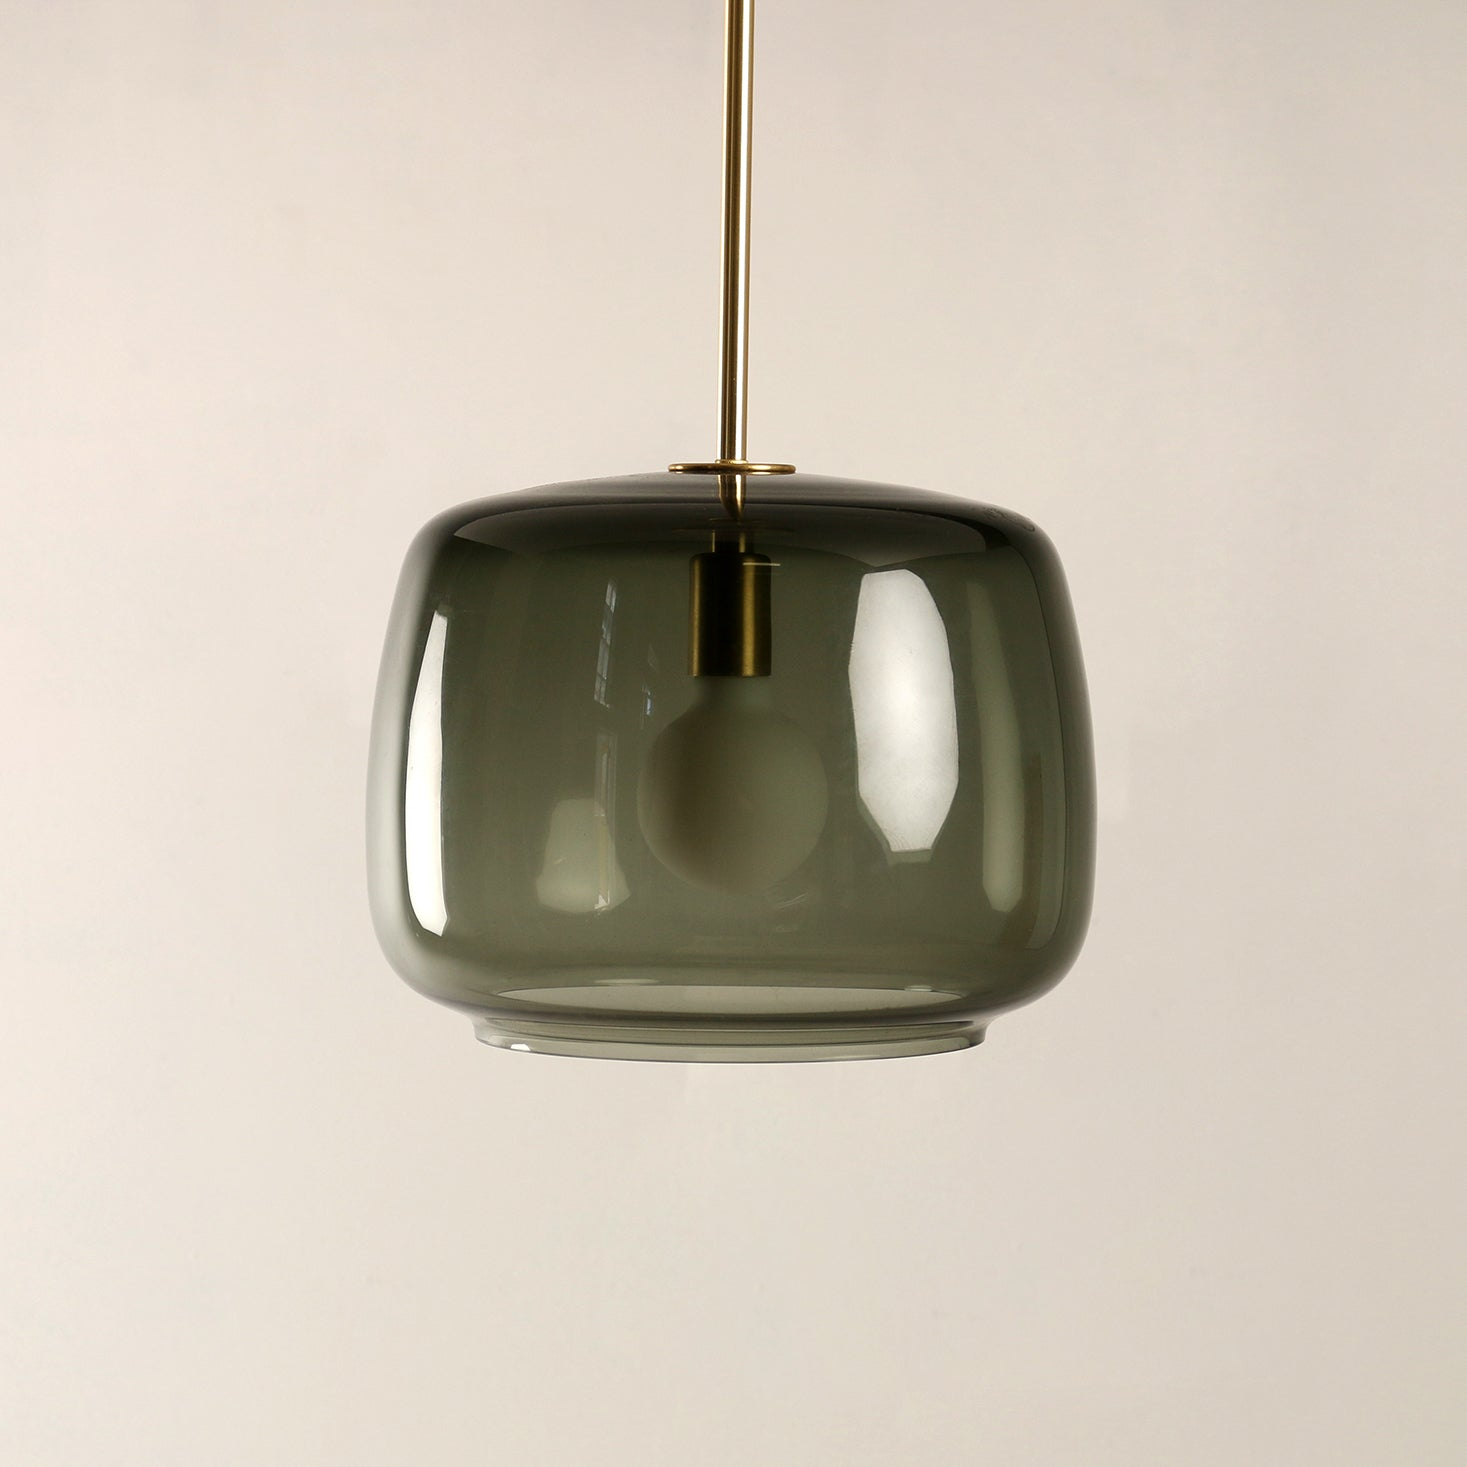 Radiata Pendant in Smoke Grey with Brass Details